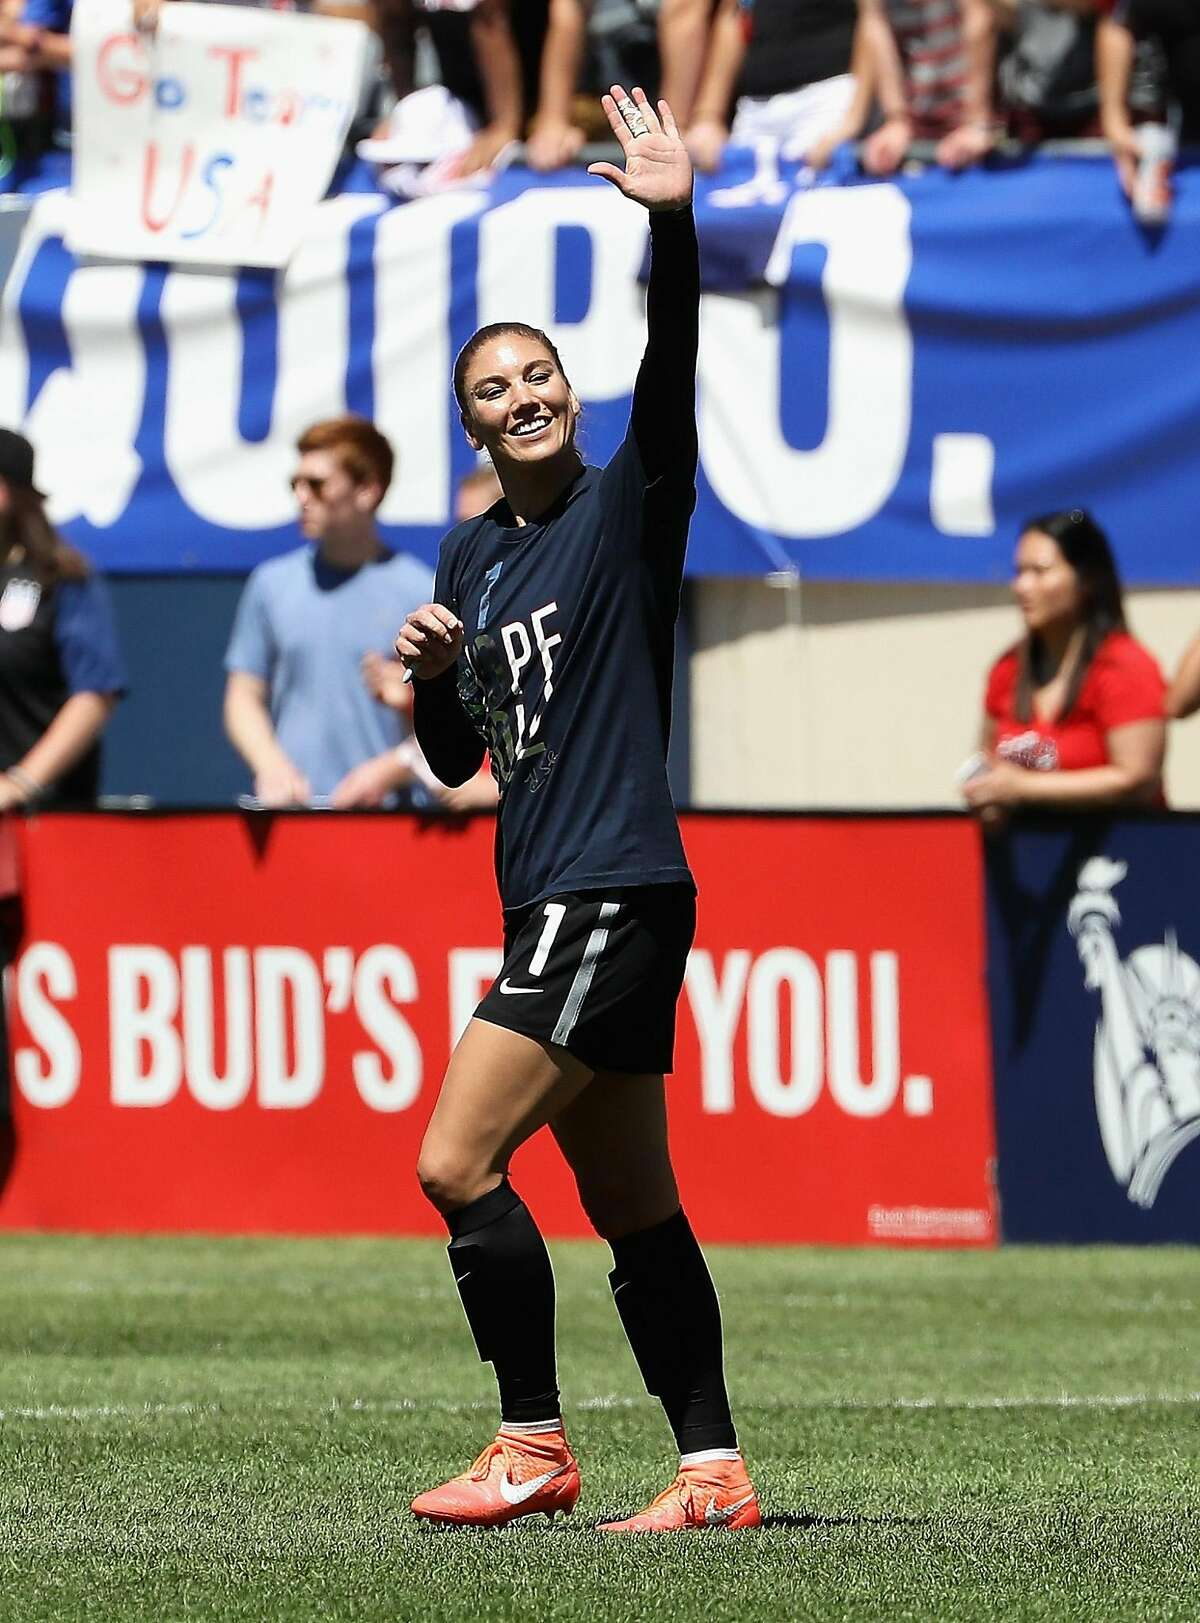 CHICAGO, IL - JULY 09: Hope Solo #1 of the United States waves to the crowd after posting her100th career shut-out against South Africa after a friendly match at Soldier Field on July 9, 2016 in Chicago, Illinois. The United States defeated South Africa 1-0. (Photo by Jonathan Daniel/Getty Images)